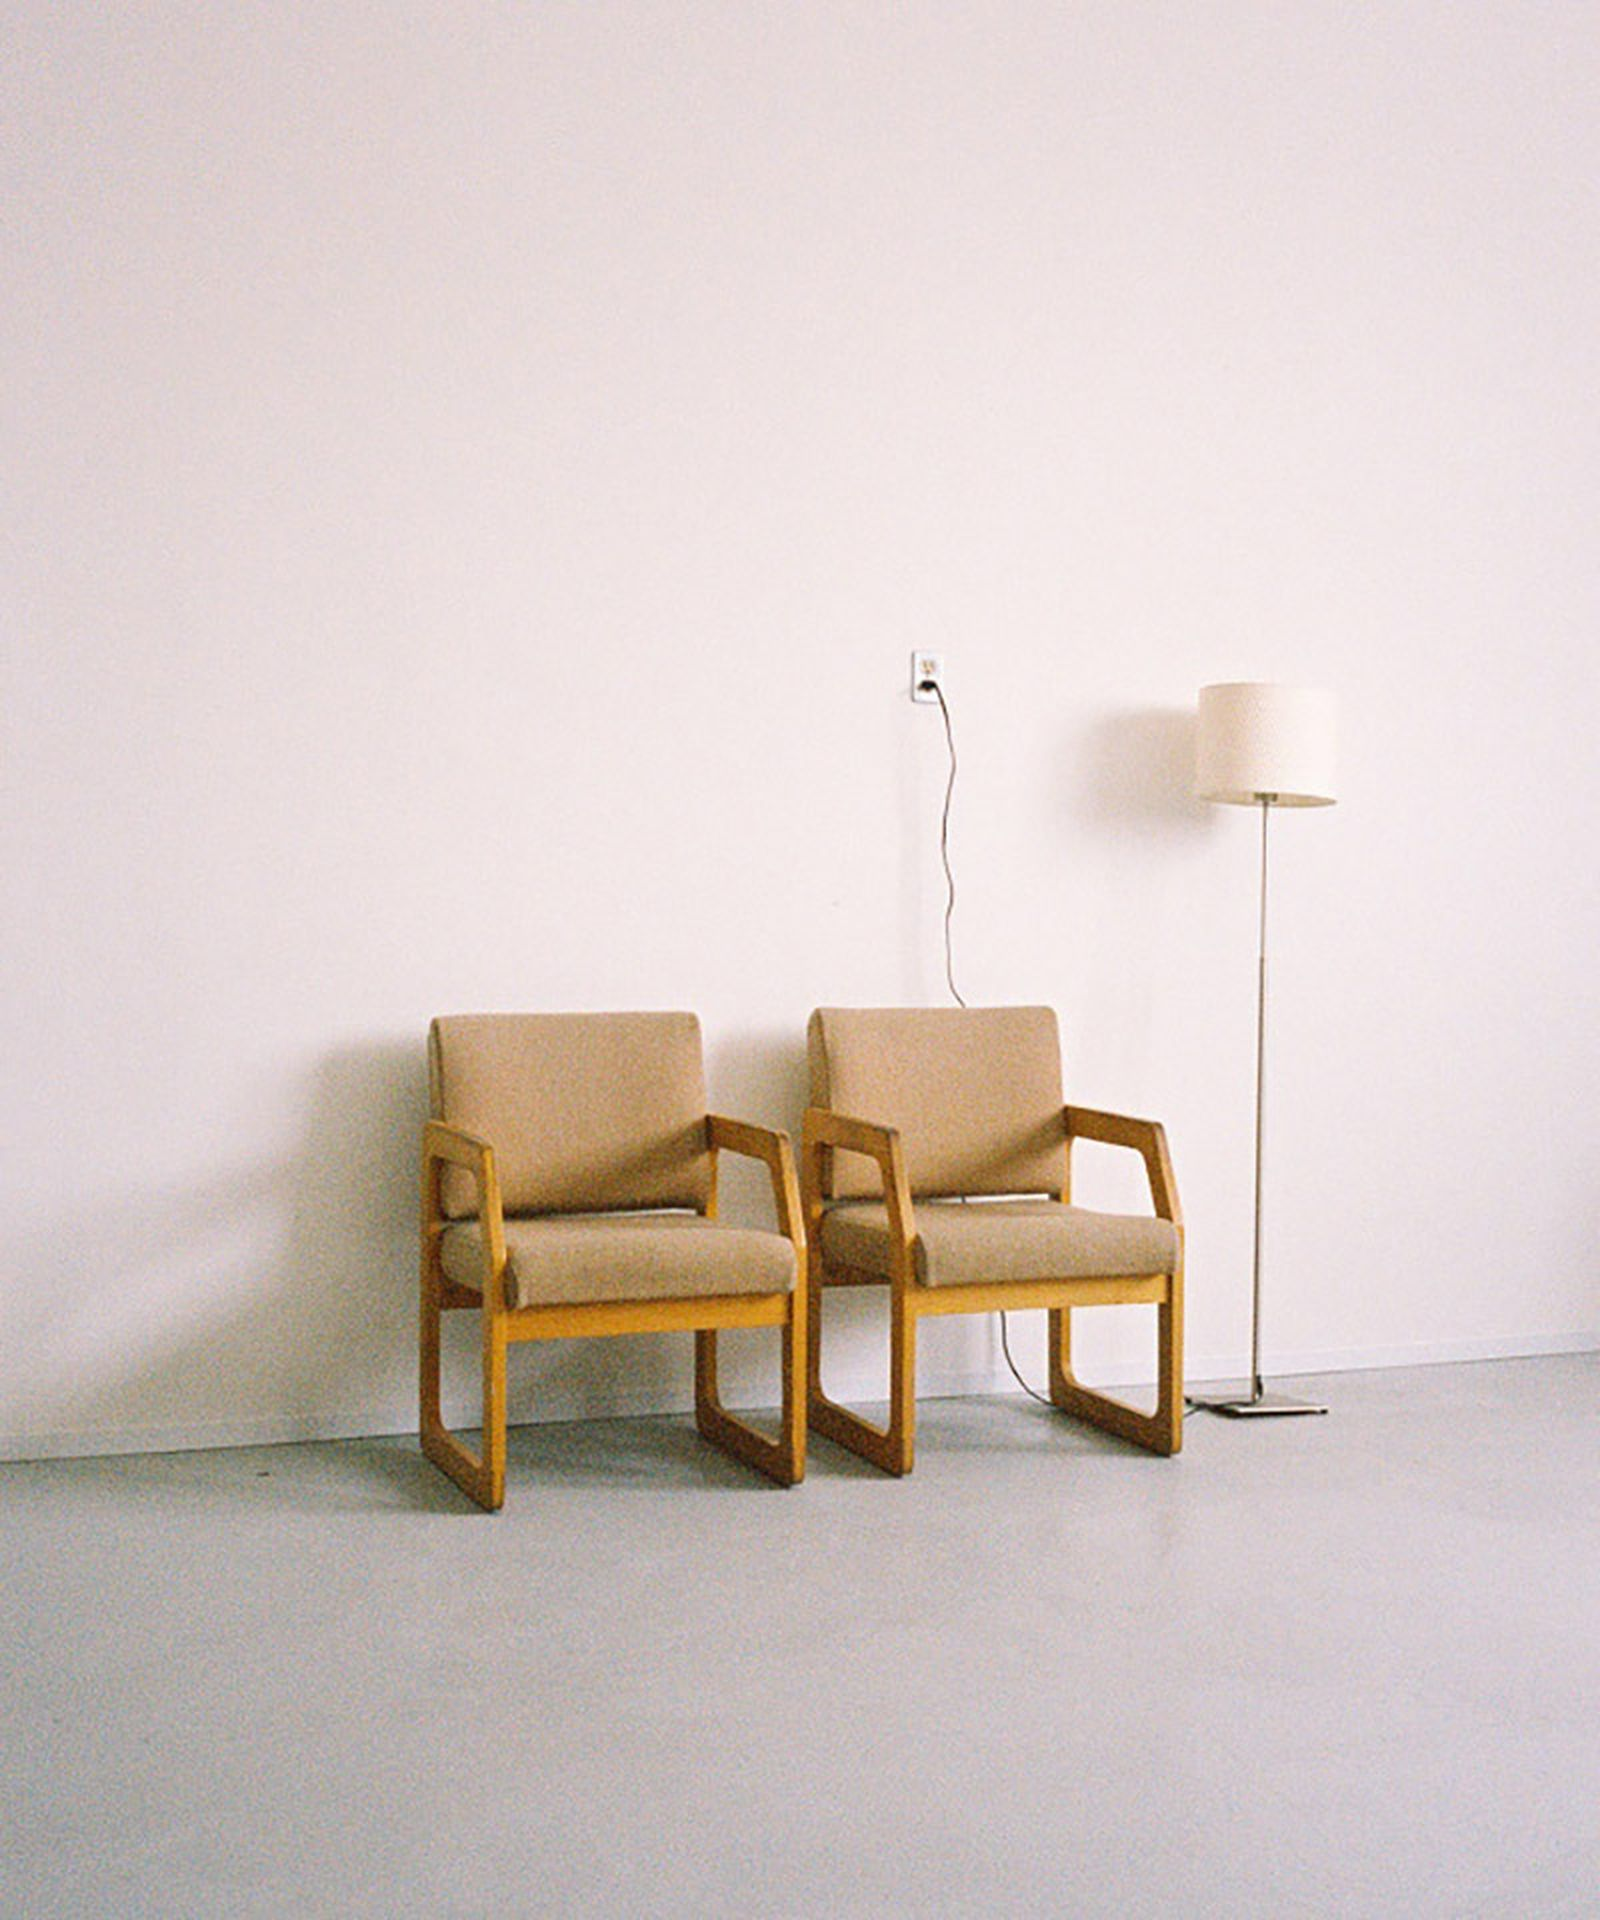 cary-fagan-interview-chairs-are-people-06